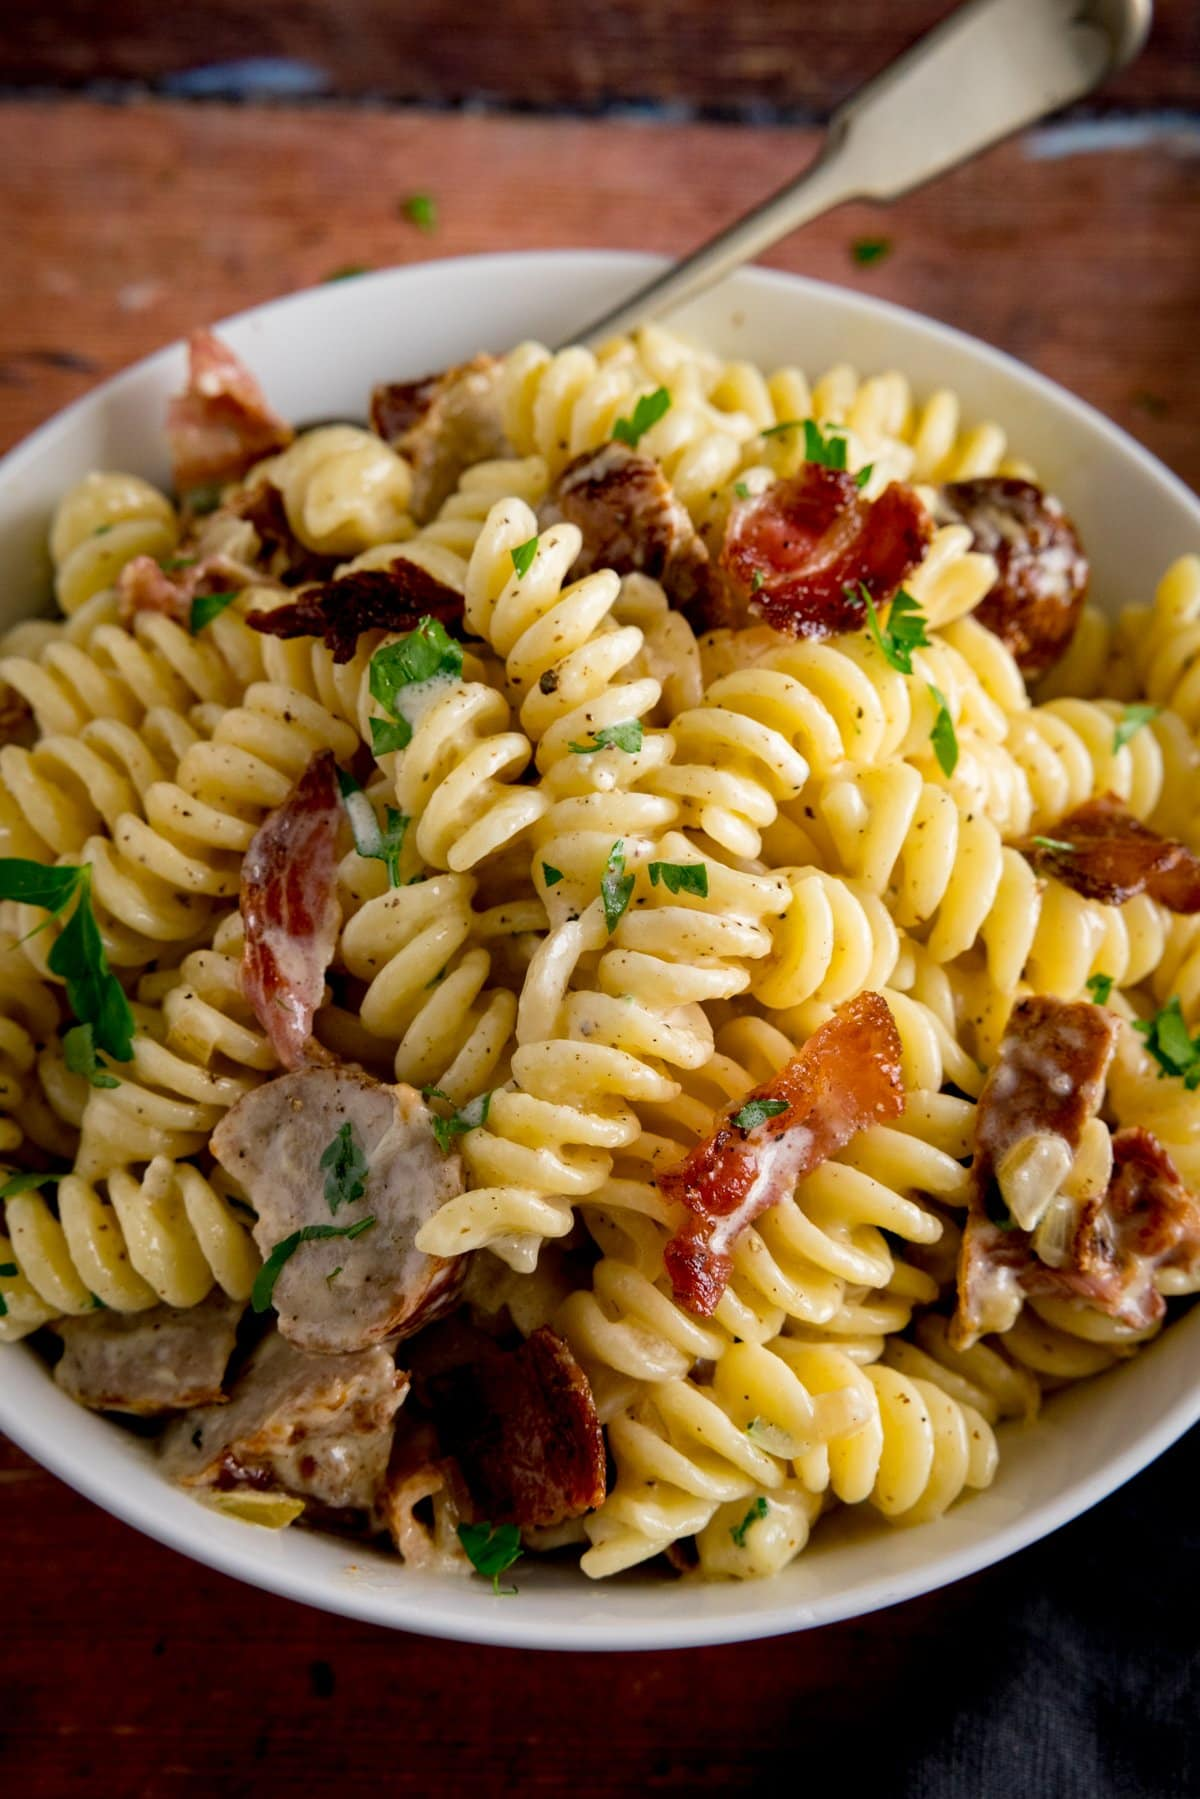 creamy pasta with sausage and bacon in a white bowl on a wooden surface. There is a fork sticking out of the pasta.